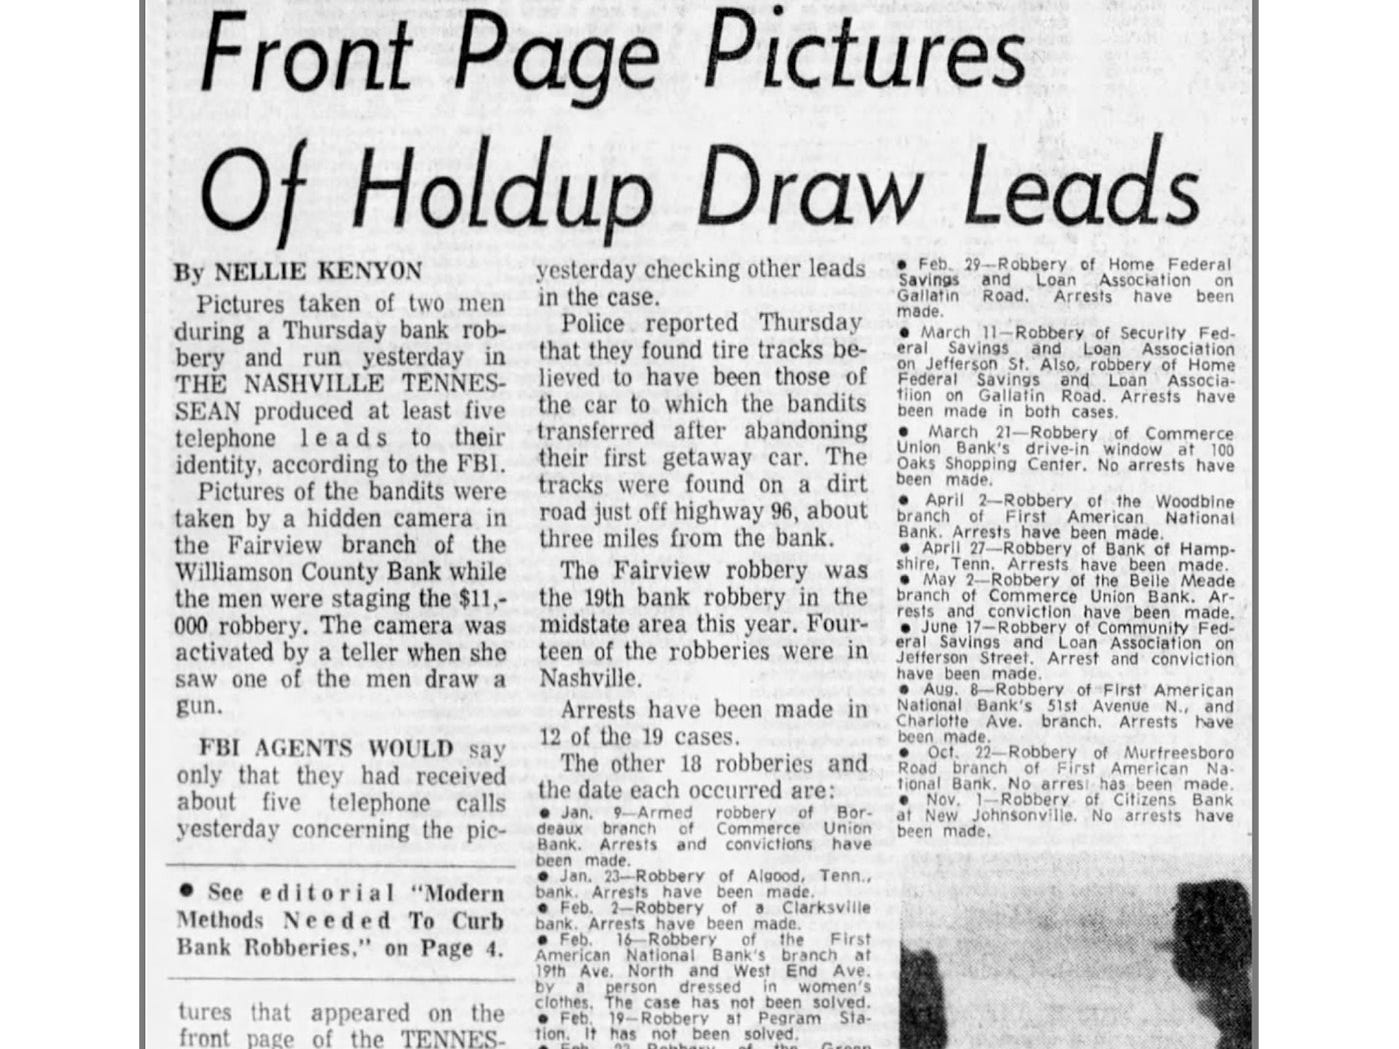 Tennessean 1968 clipping reports on how new camera system in Fairview bank captured photograph of robbers.